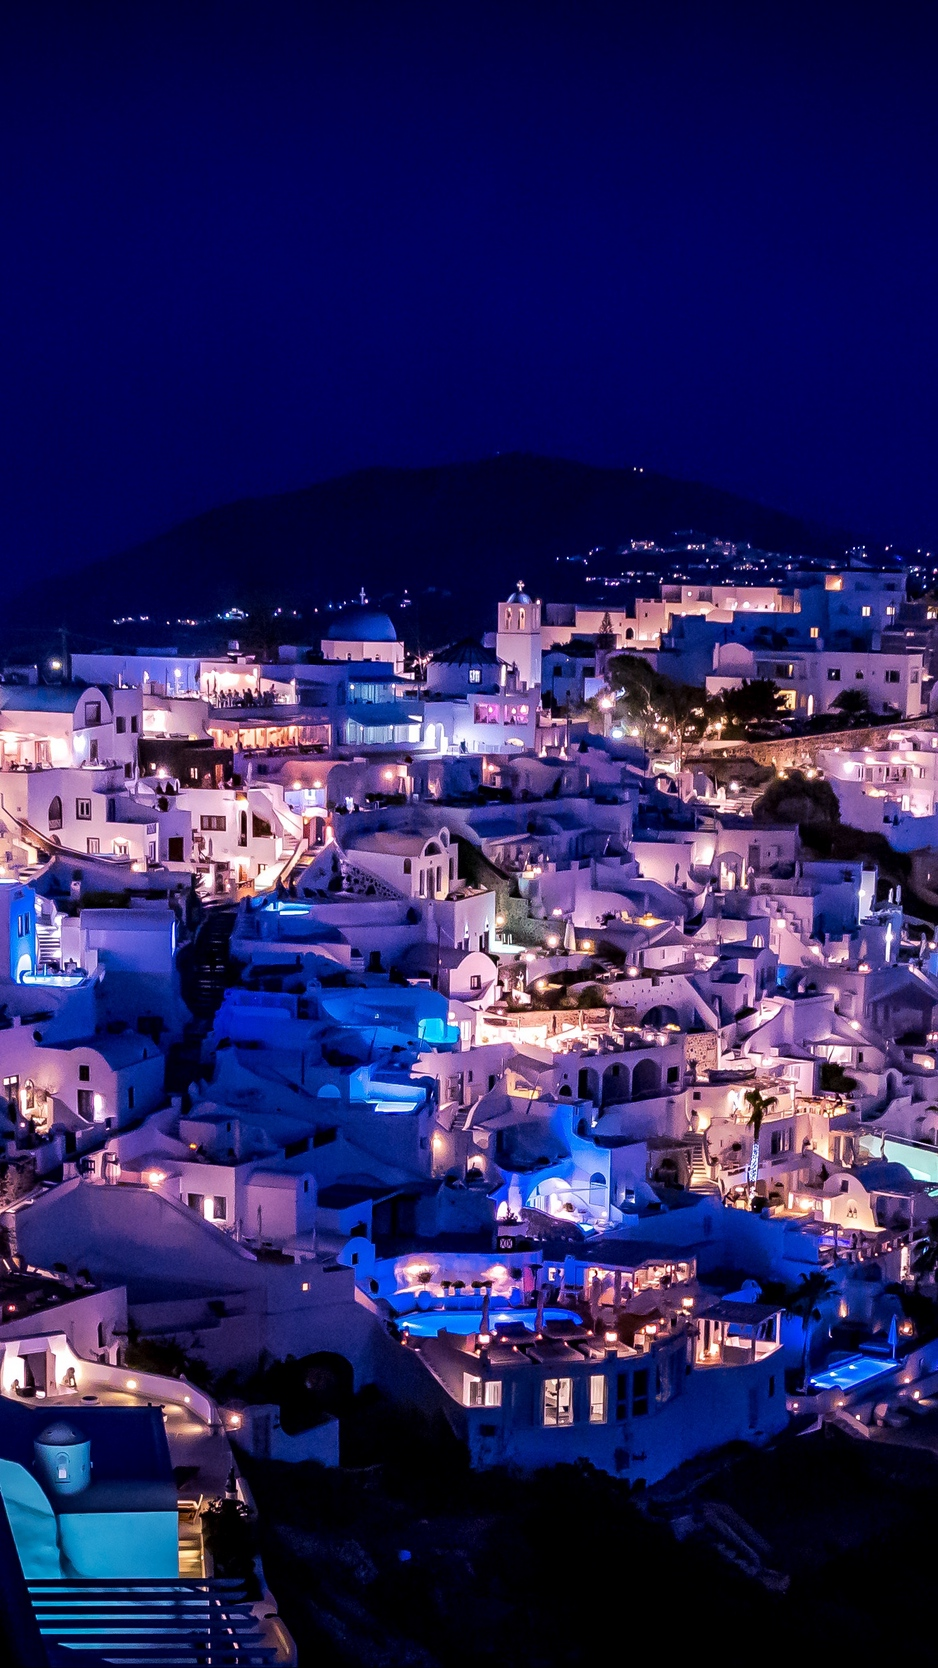 Download wallpaper 938x1668 santorini greece night city 938x1668